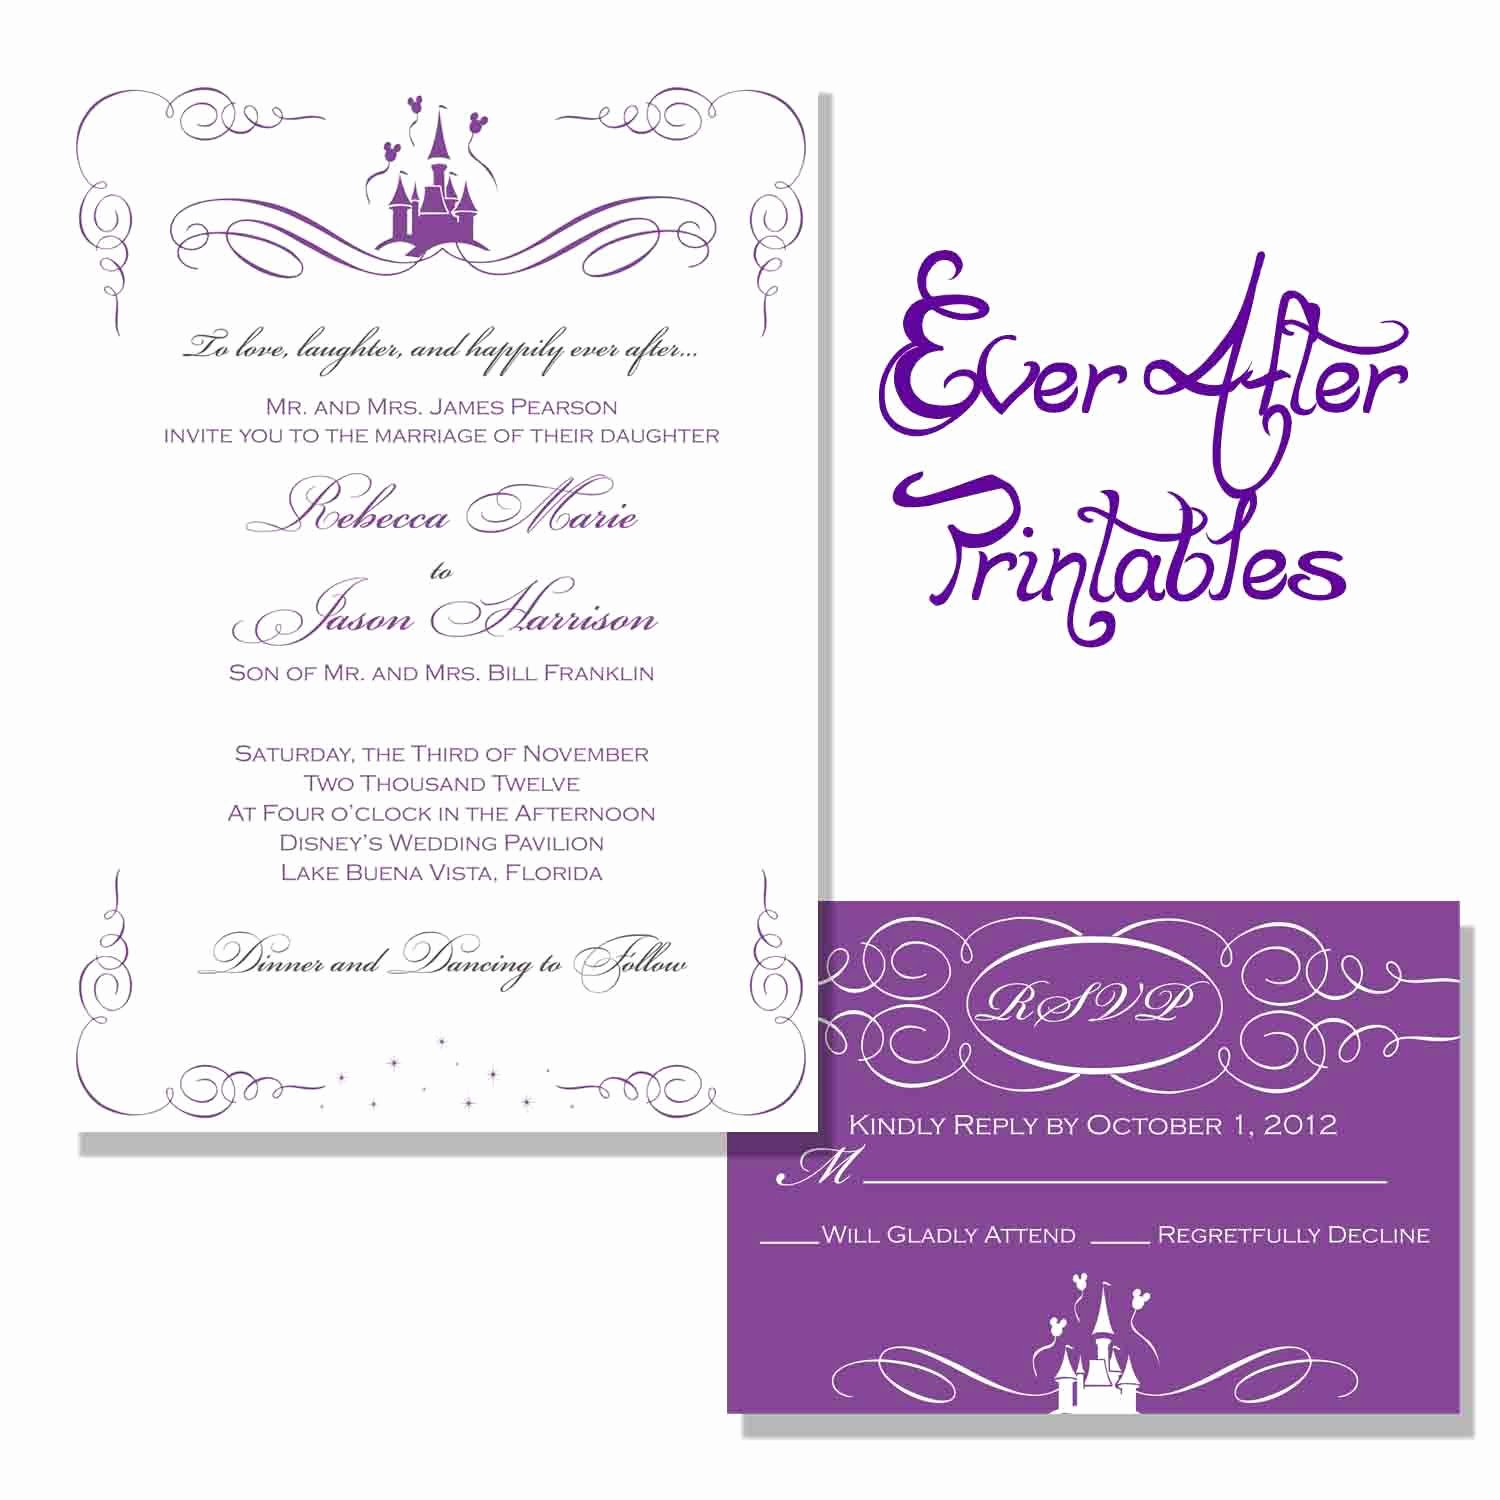 Wedding Invitation Template for Word Luxury Engagement Party Invitation Word Templates Free Card